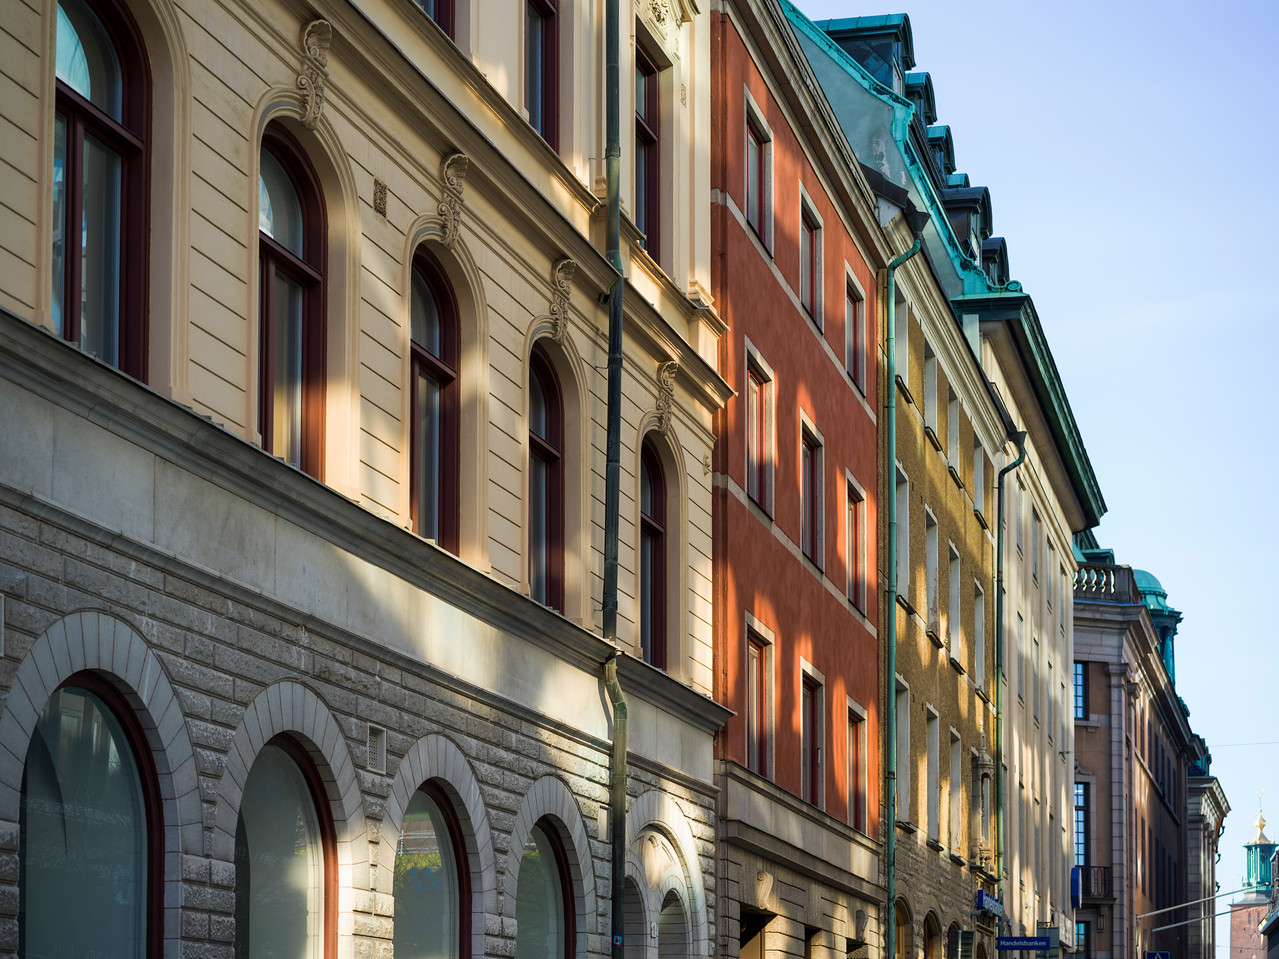 Faade of traditional buildings in city, Stockholm, Sweden